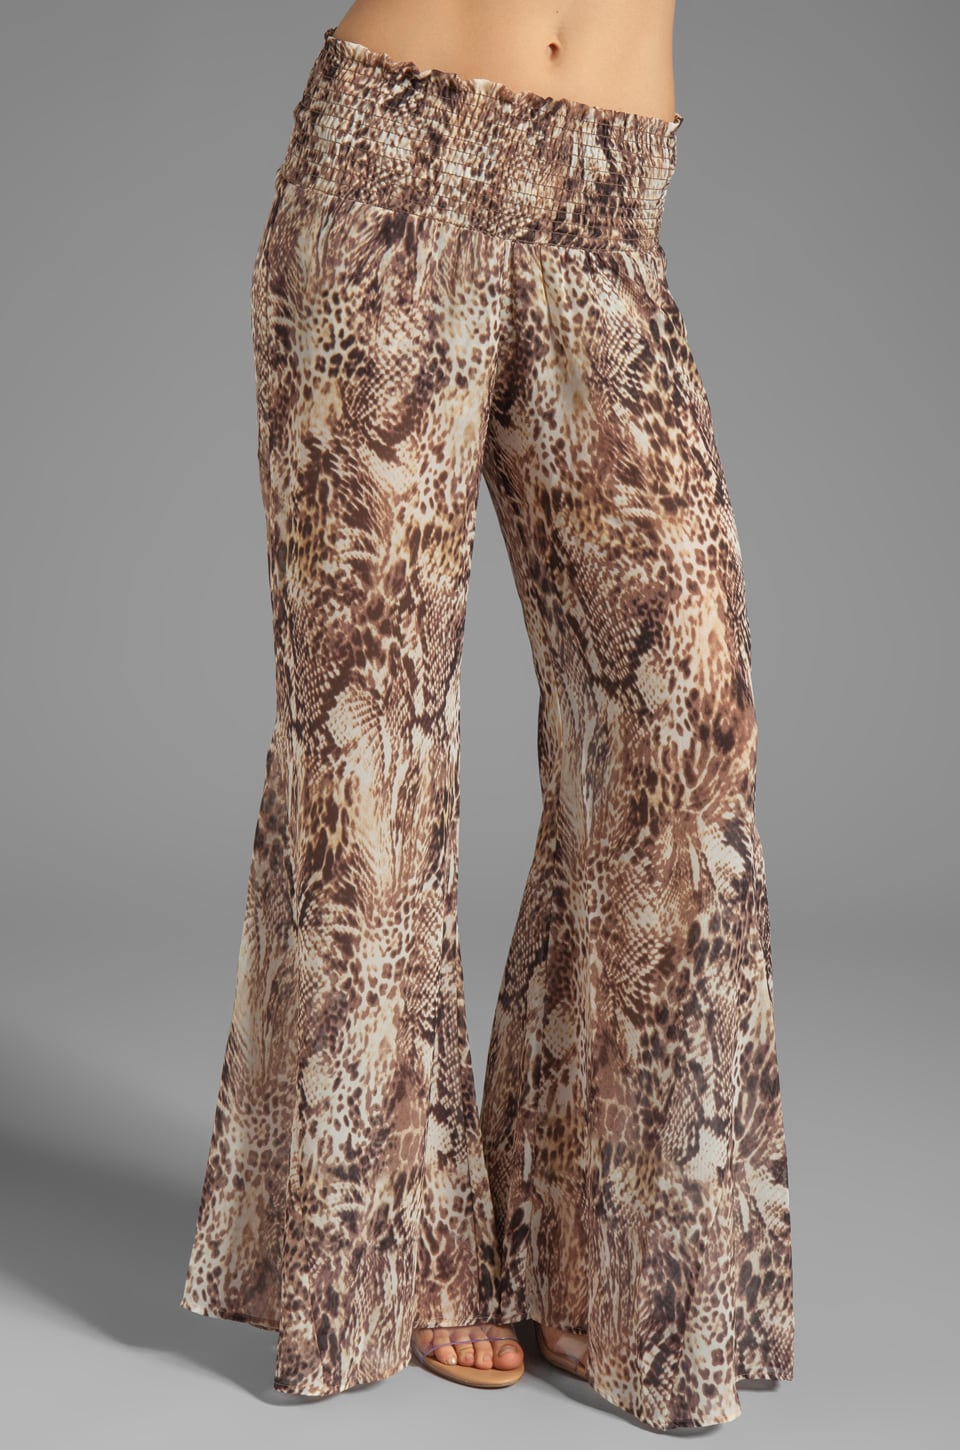 Show Me Your Mumu Roberts Party Pants in Leopard Snake